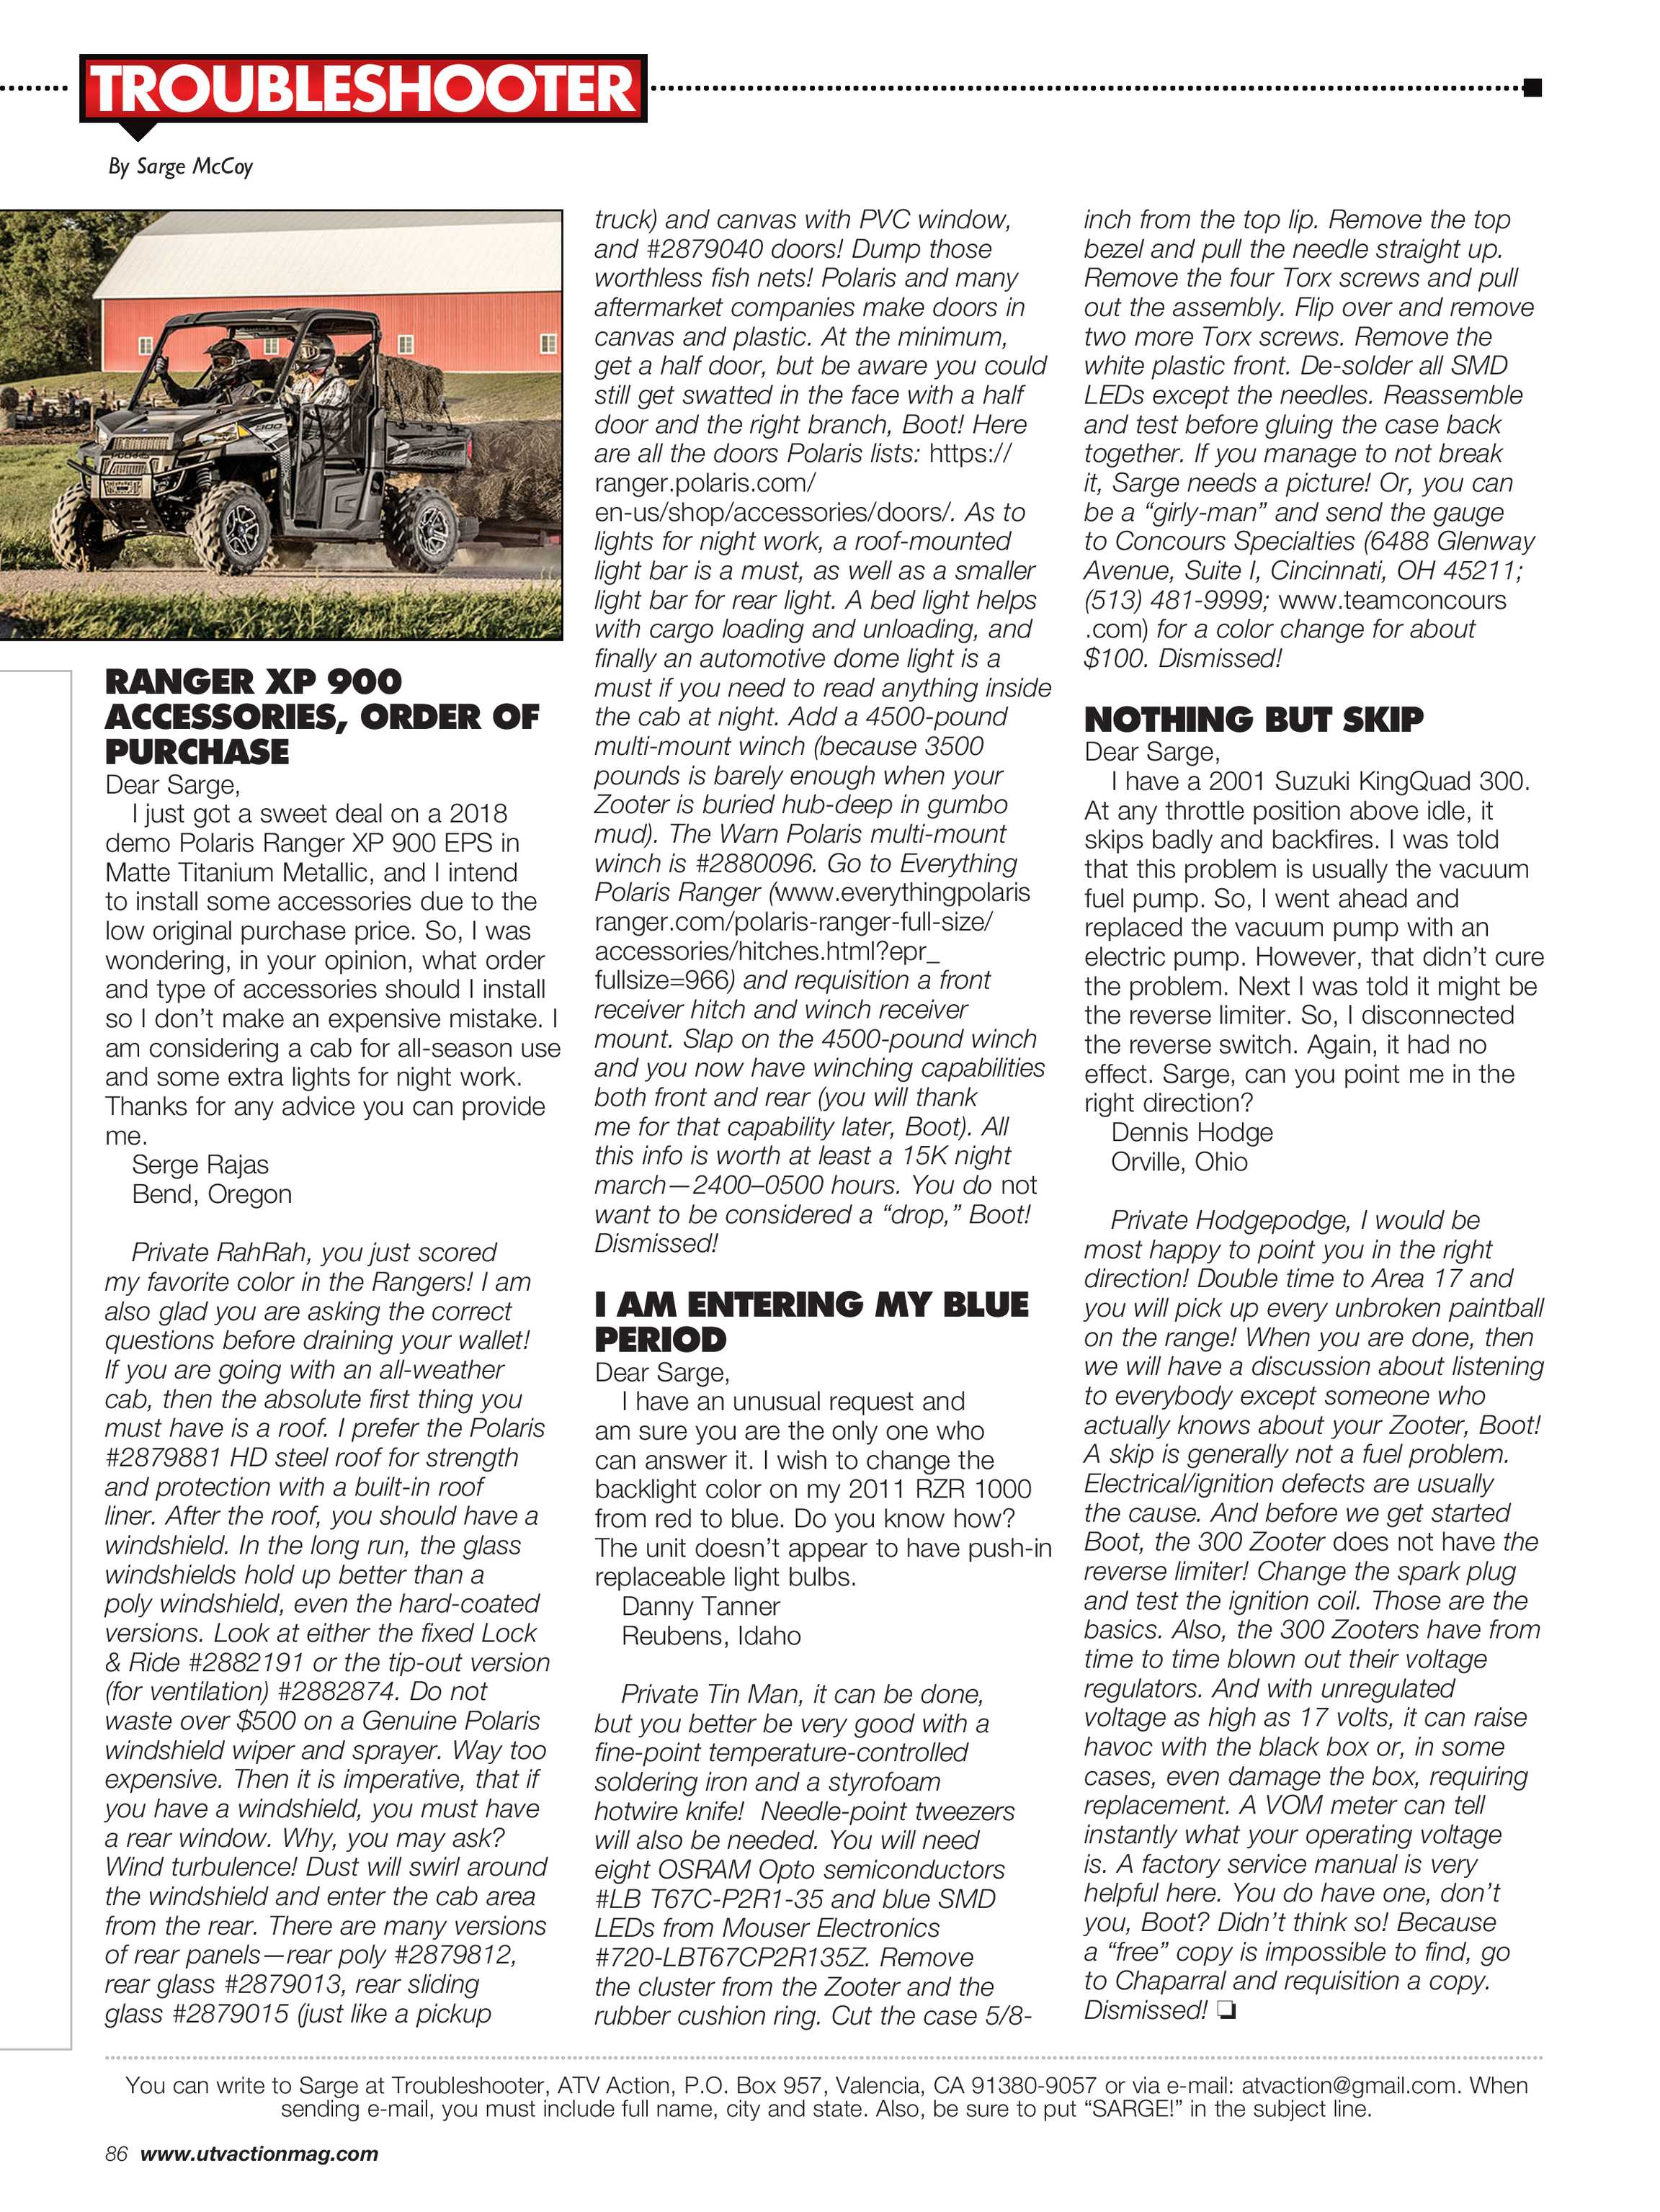 UTV Action Magazine - March 2019 - page 86